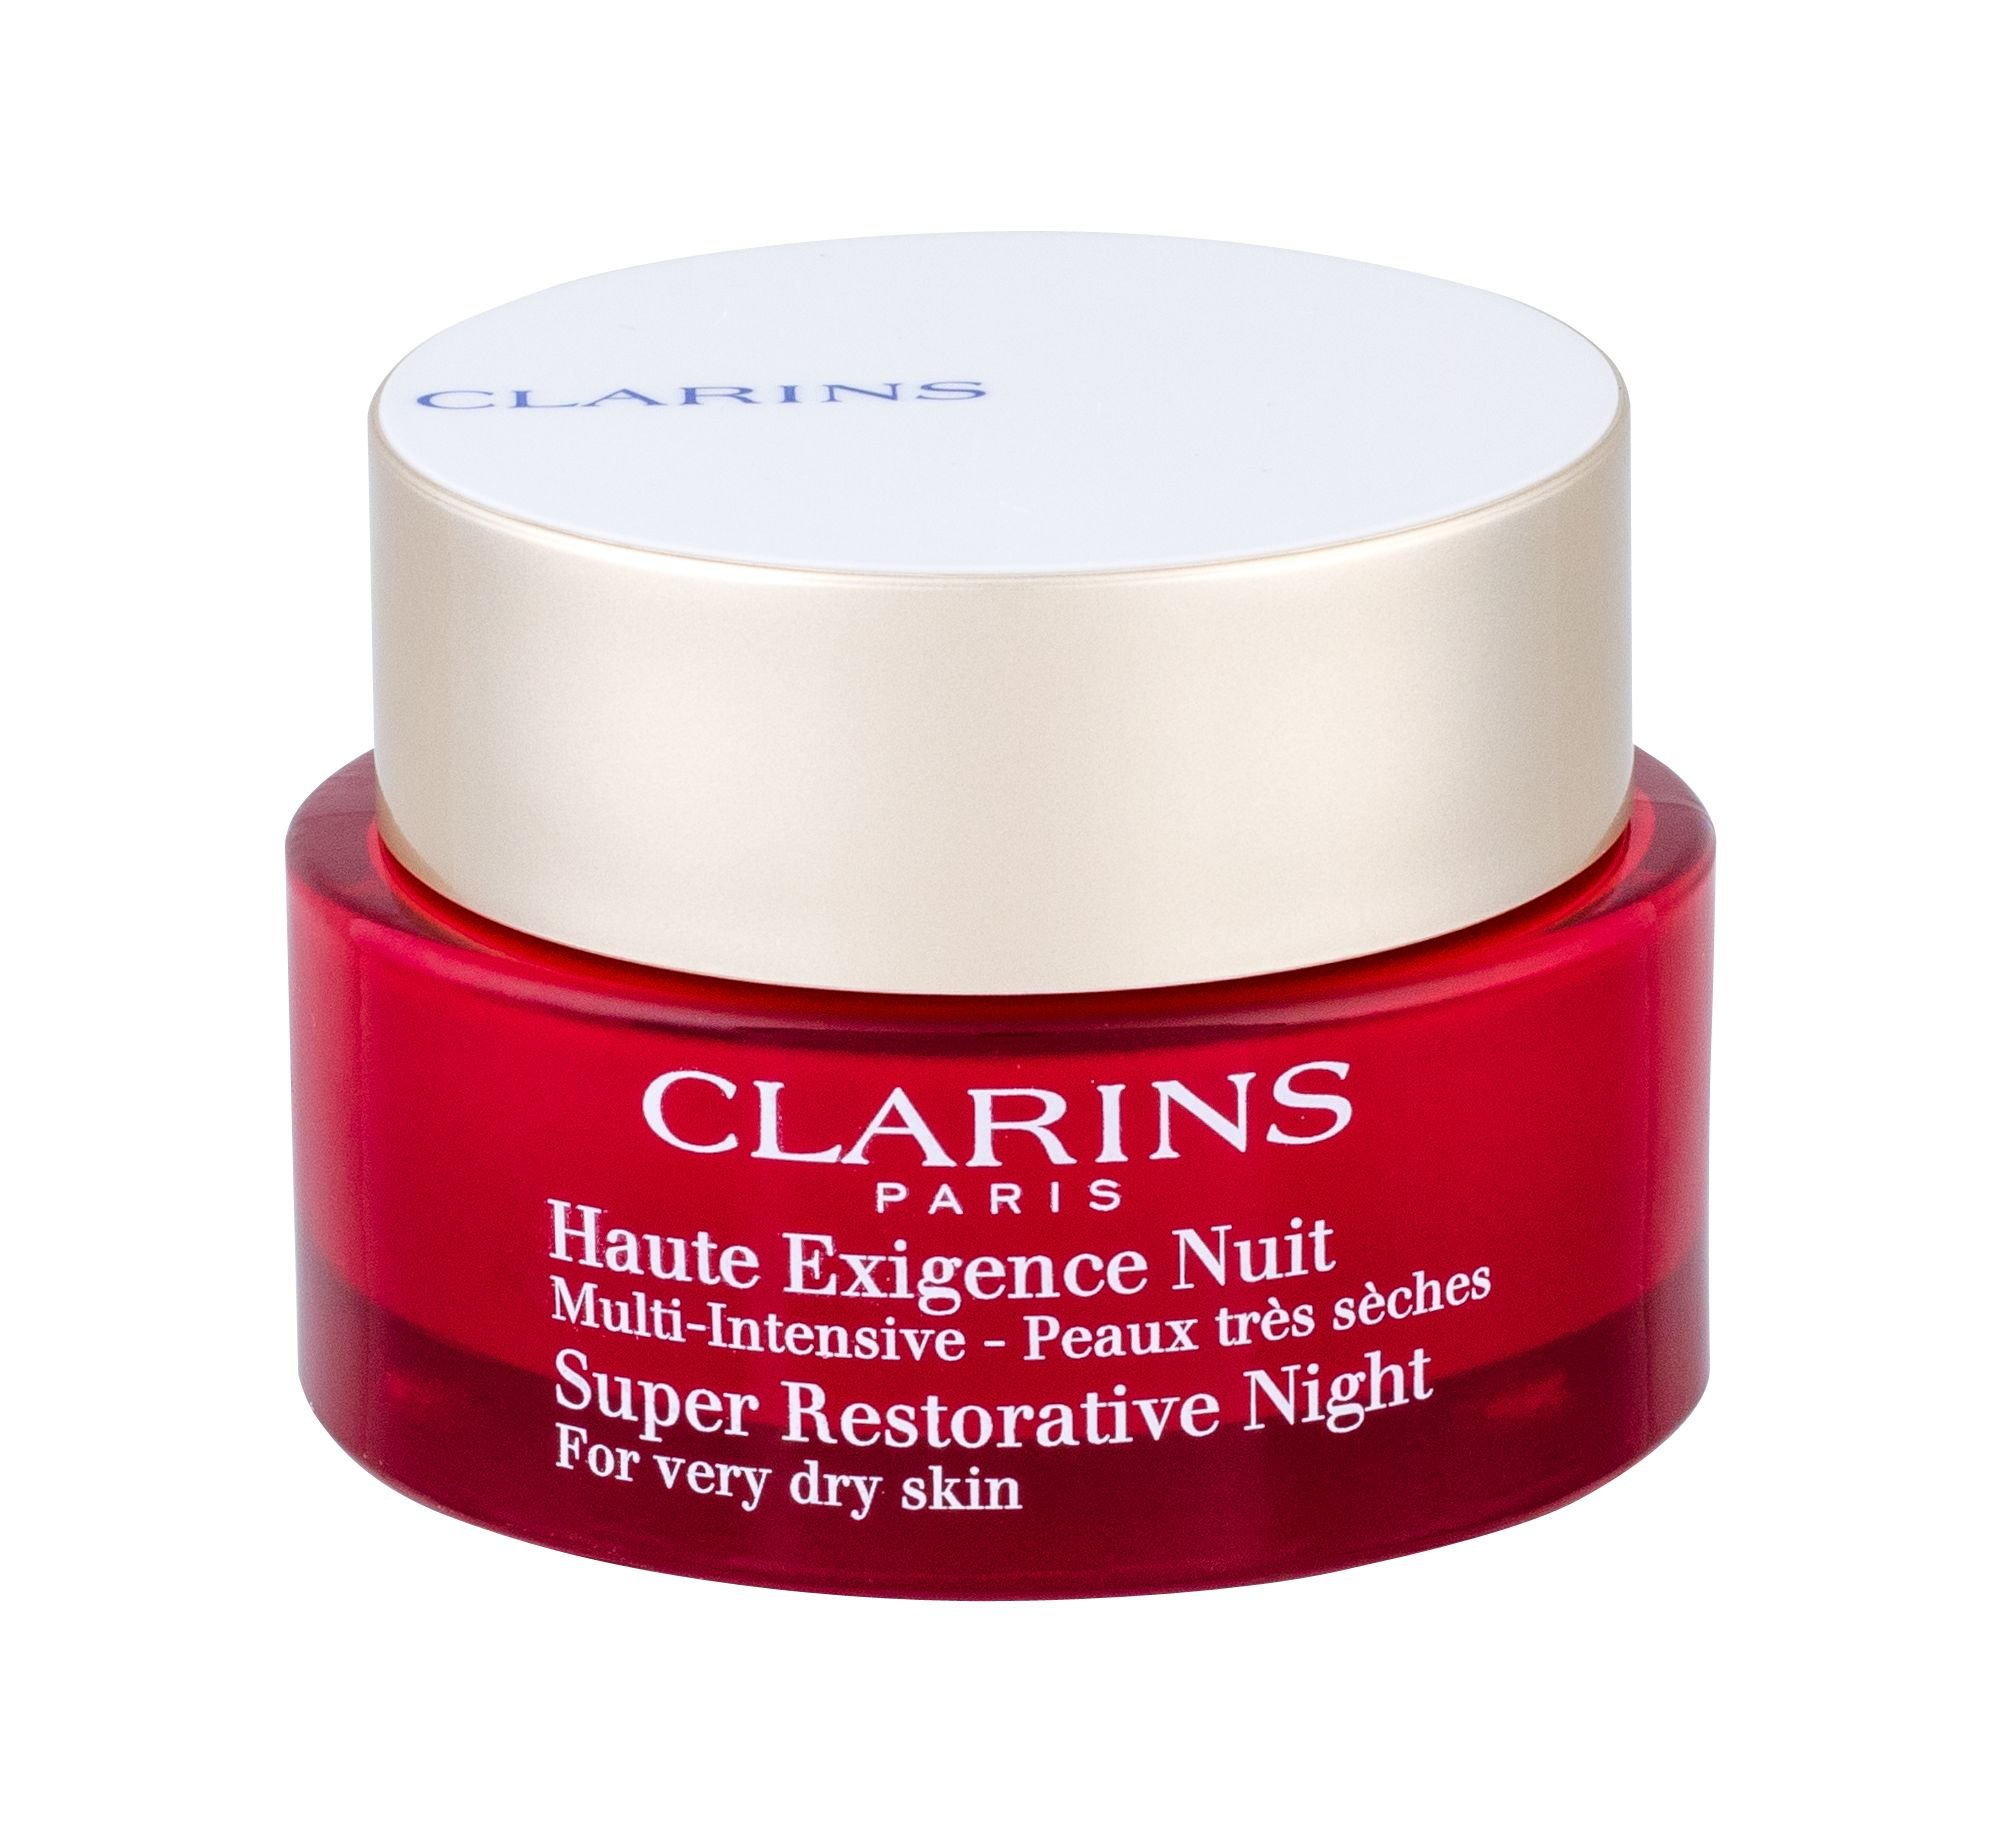 Clarins Super Restorative Night Skin Cream 50ml